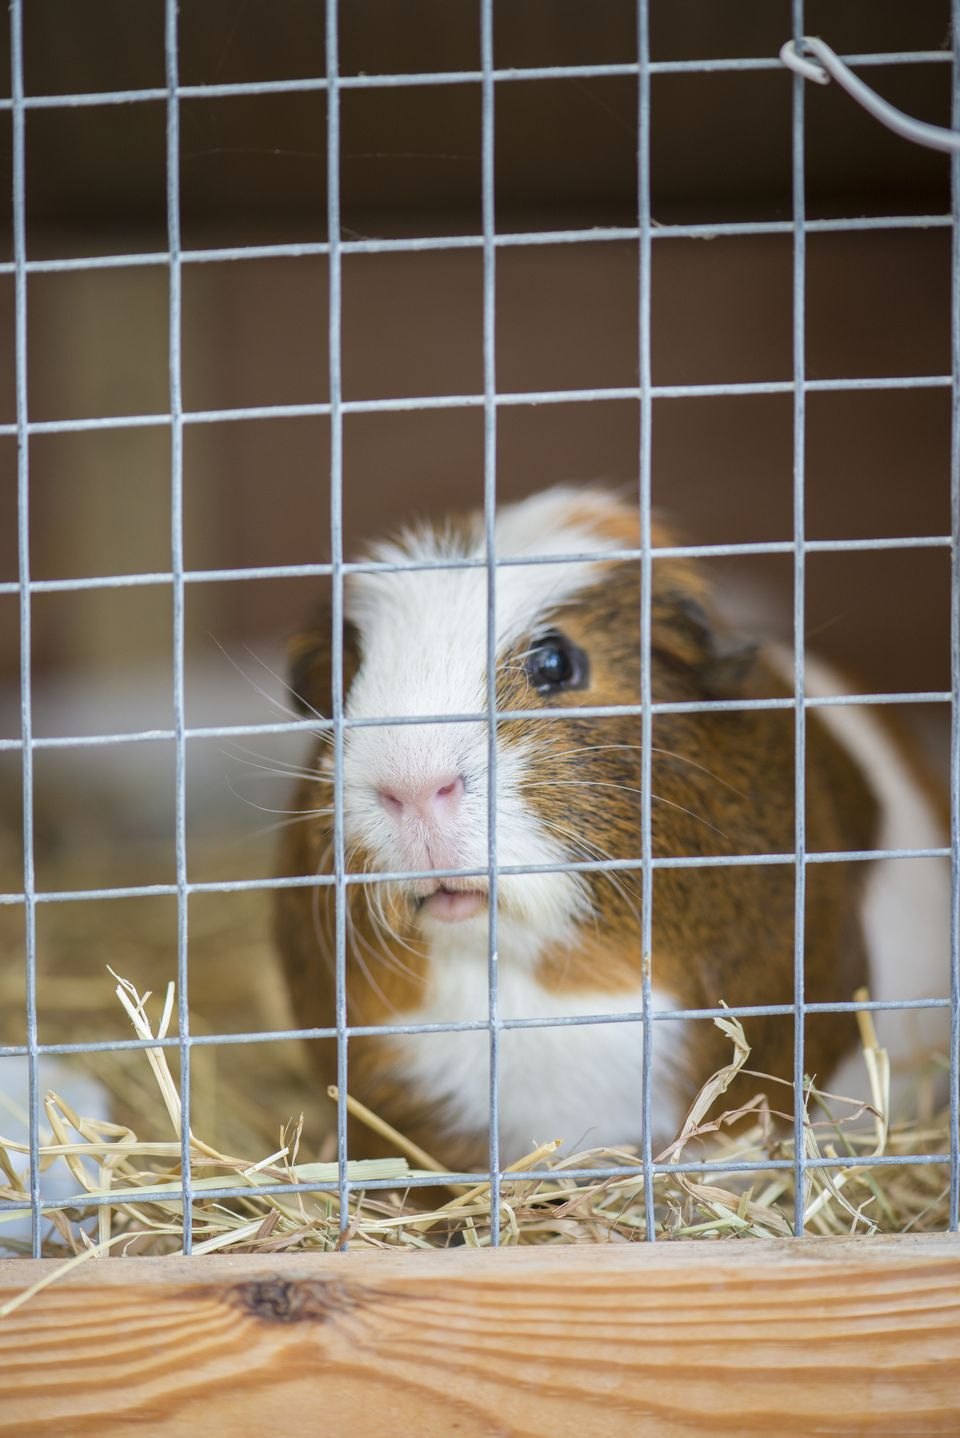 Guinea Pig, male. peering out from wire mesh cage.